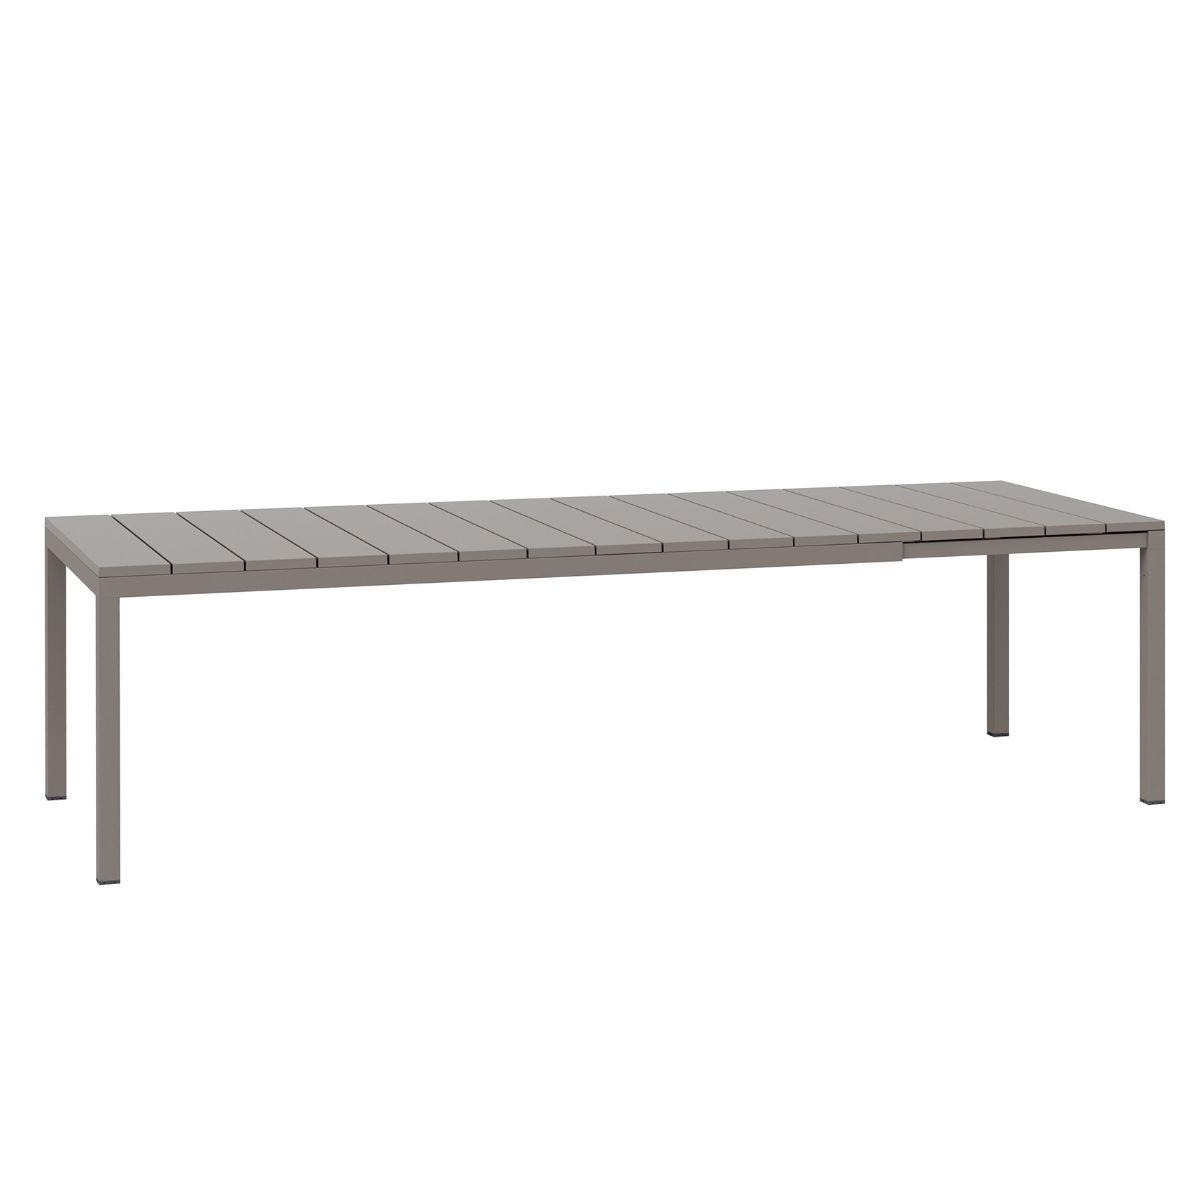 table de jardin extensible et design 280 cm rio nardi ebay